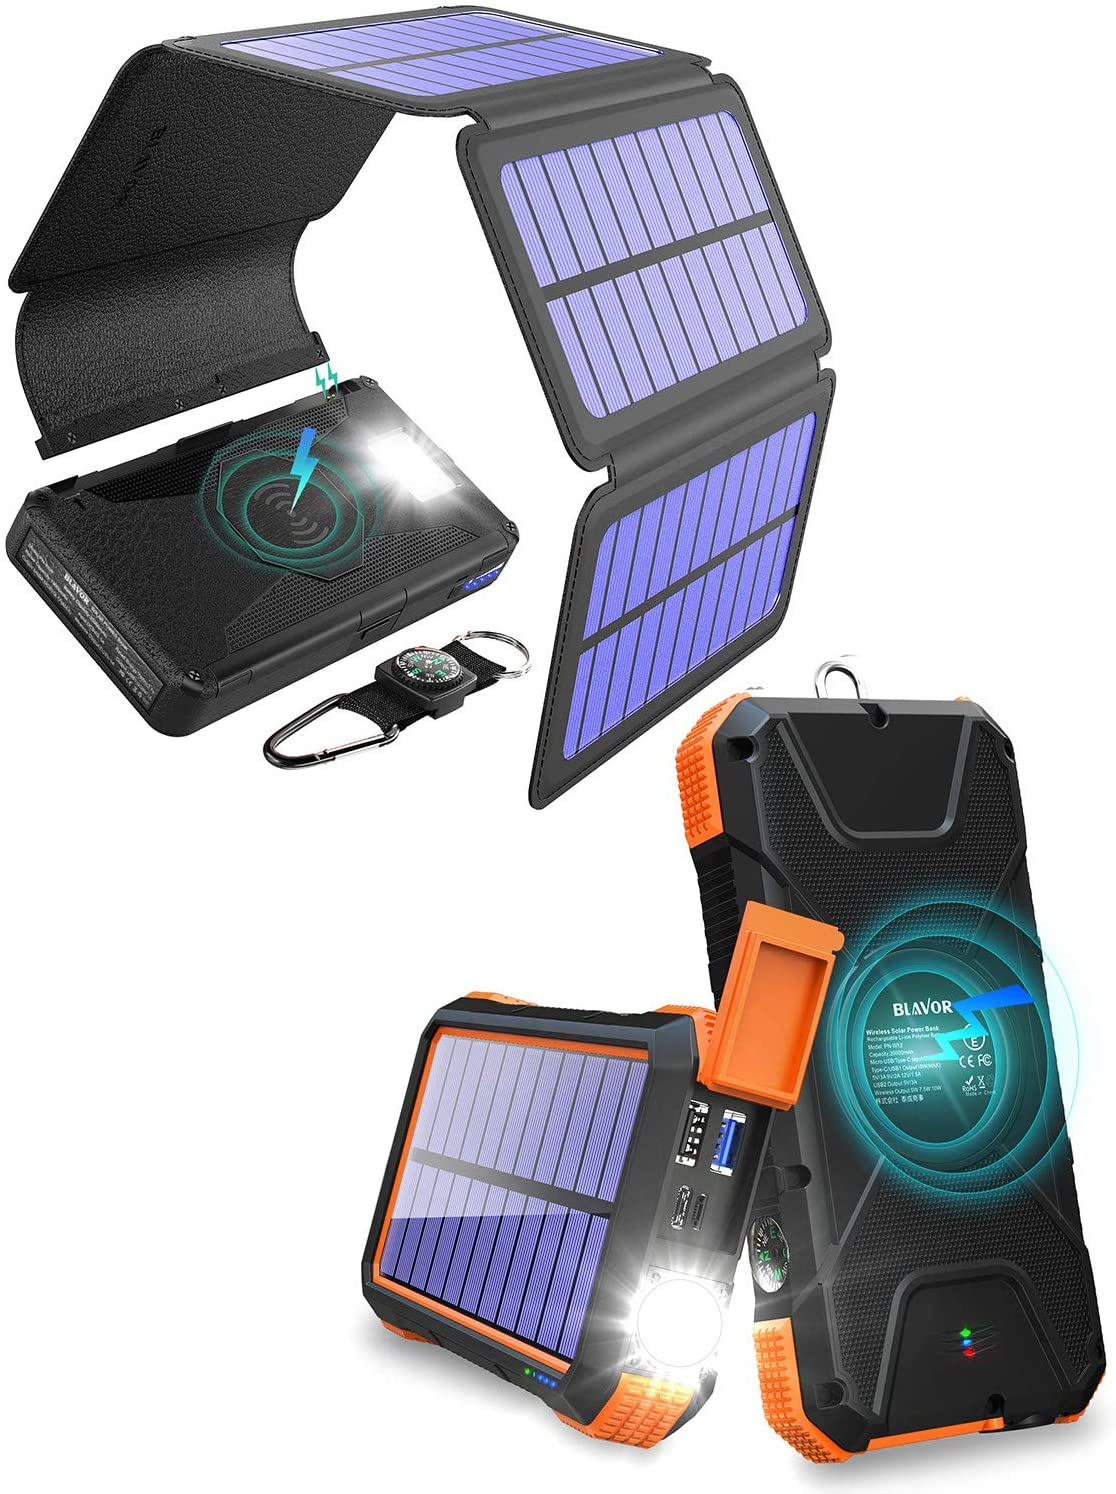 20,000mAh PD Fast Solar Phone Charger-Orange Plus 20,000mAh Wireless Solar Charger with Detachable Panels-Black